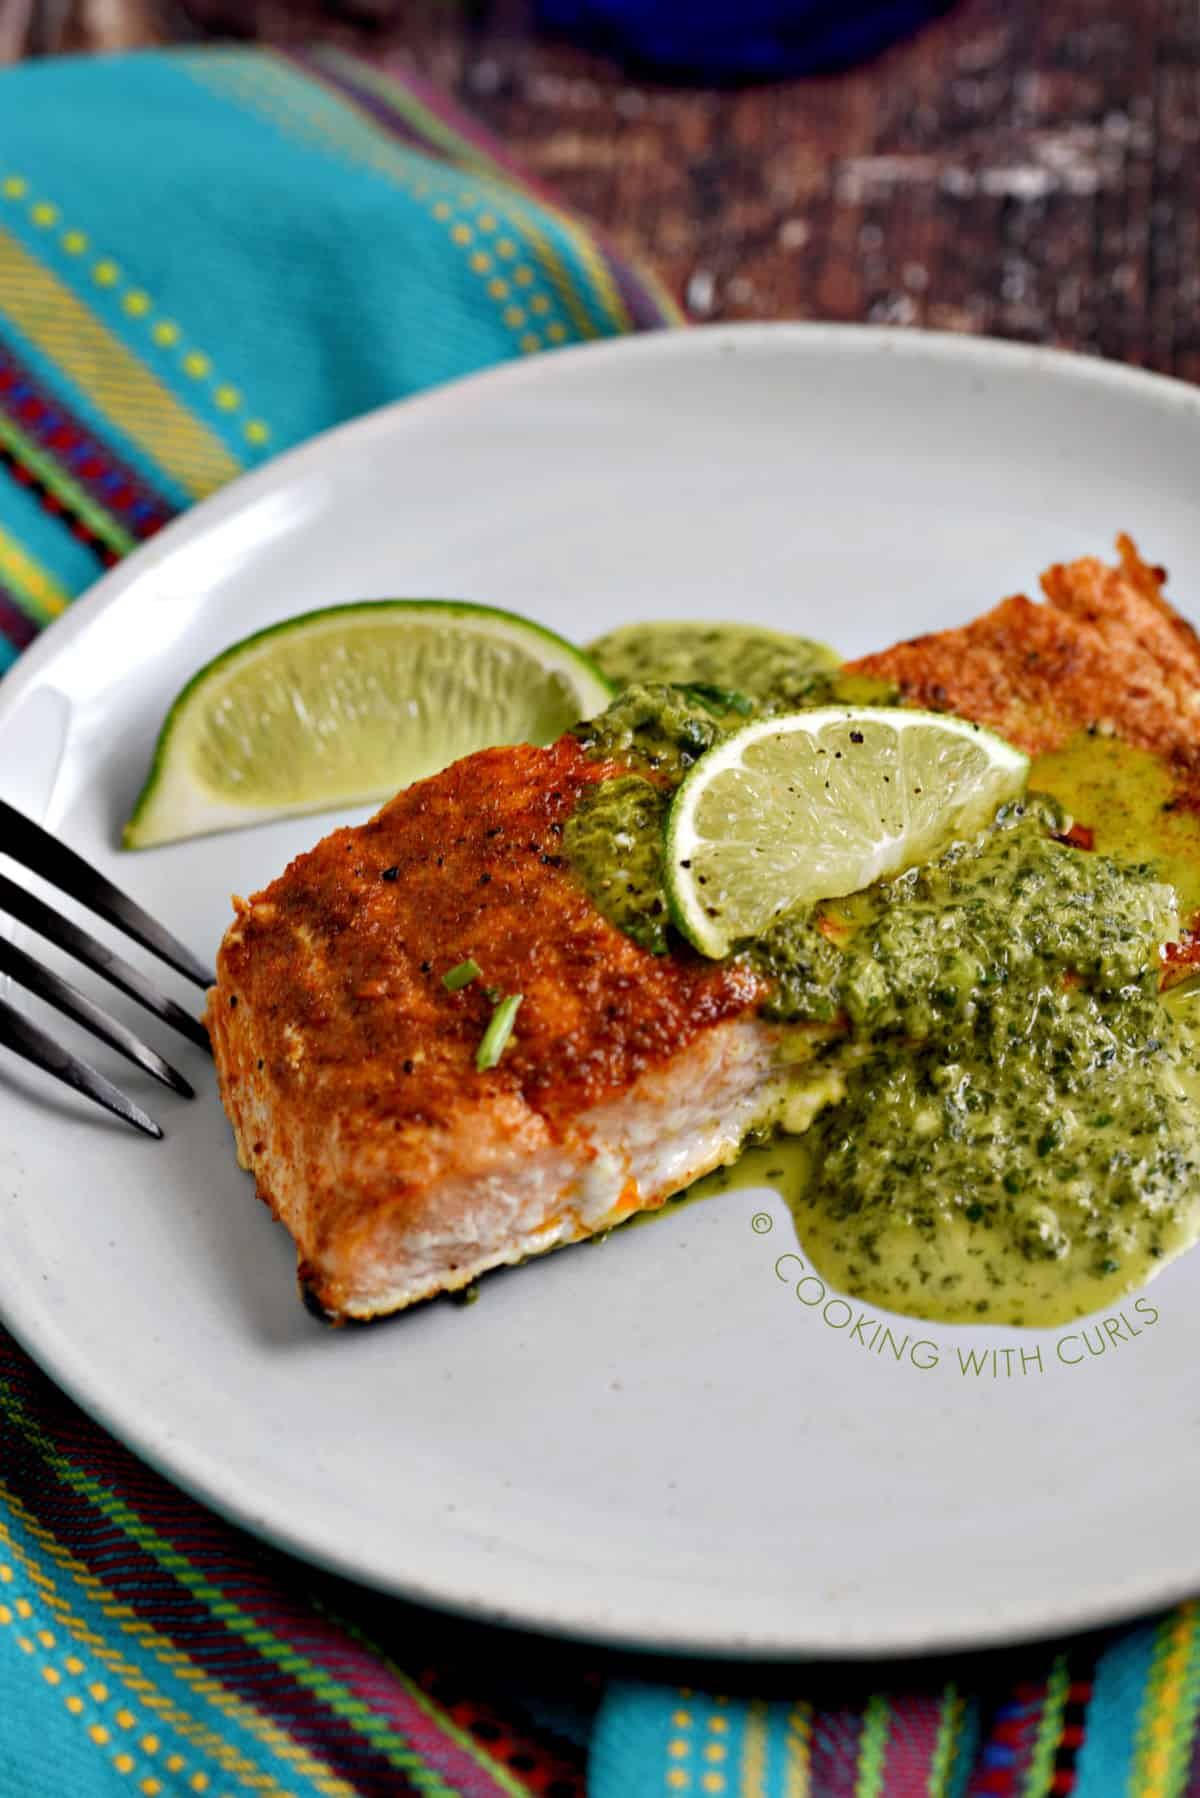 Baked Salmon topped with Cilantro Lime Sauce on a white plate with a lime wedge on the side.